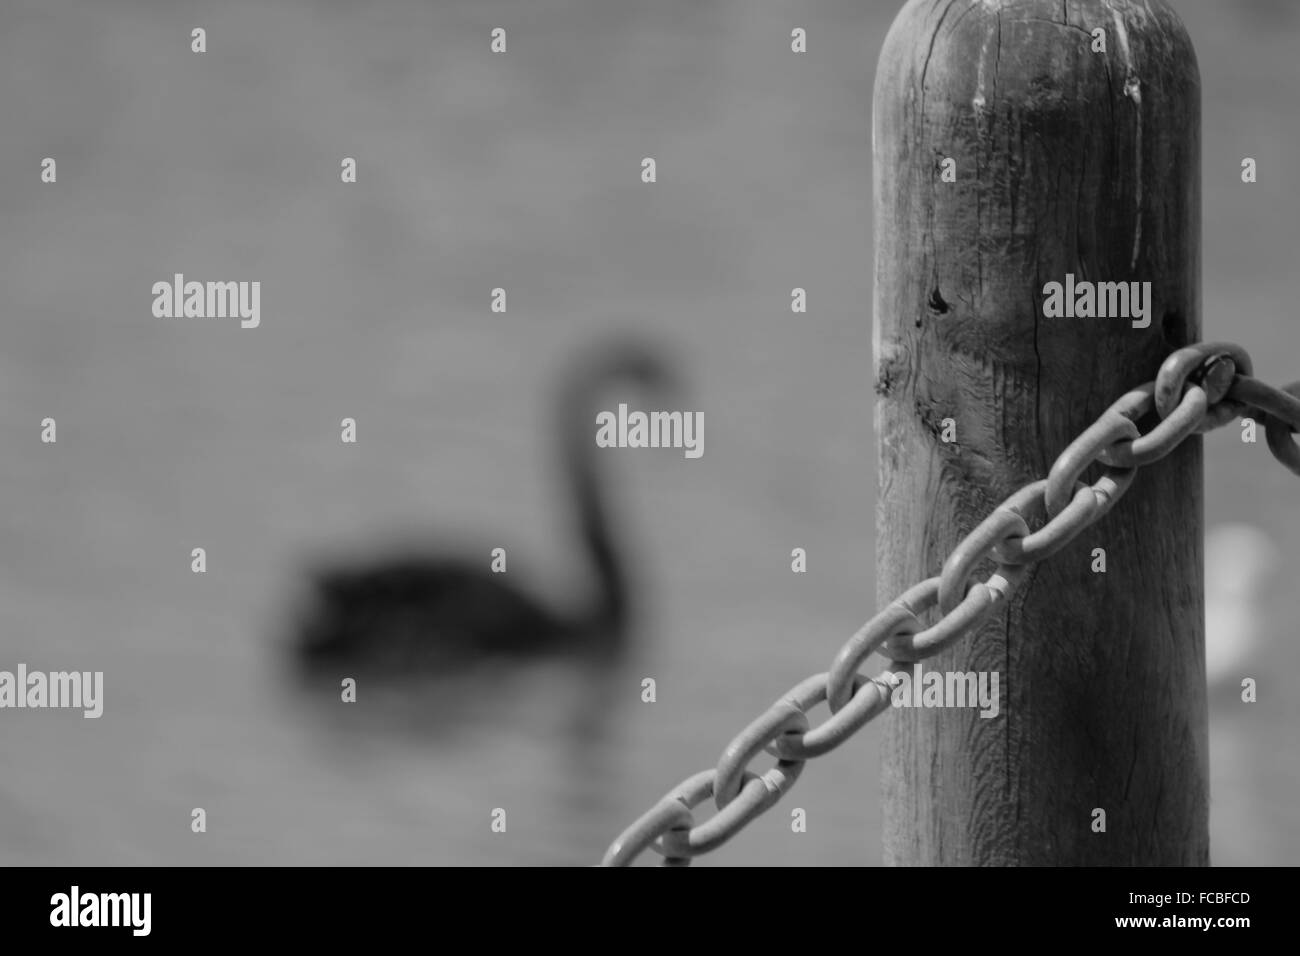 Detail Shot Of Rope Fence Against Blurred Background - Stock Image